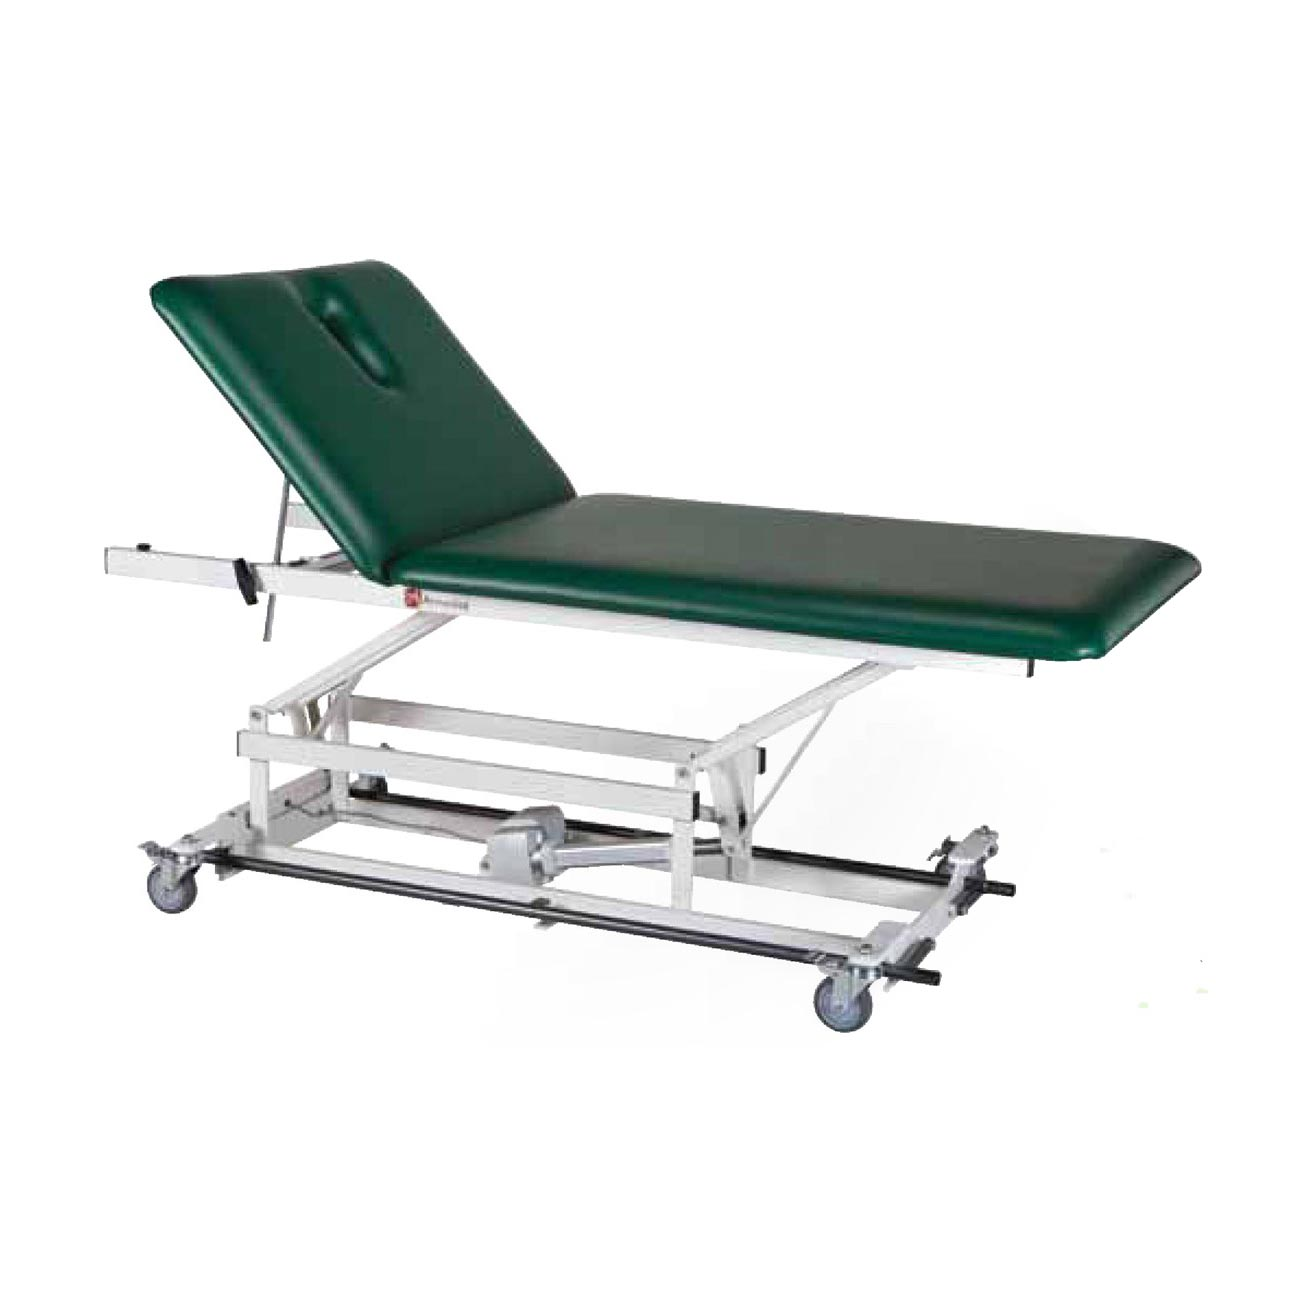 Armedica AM-BA 234 treatment table